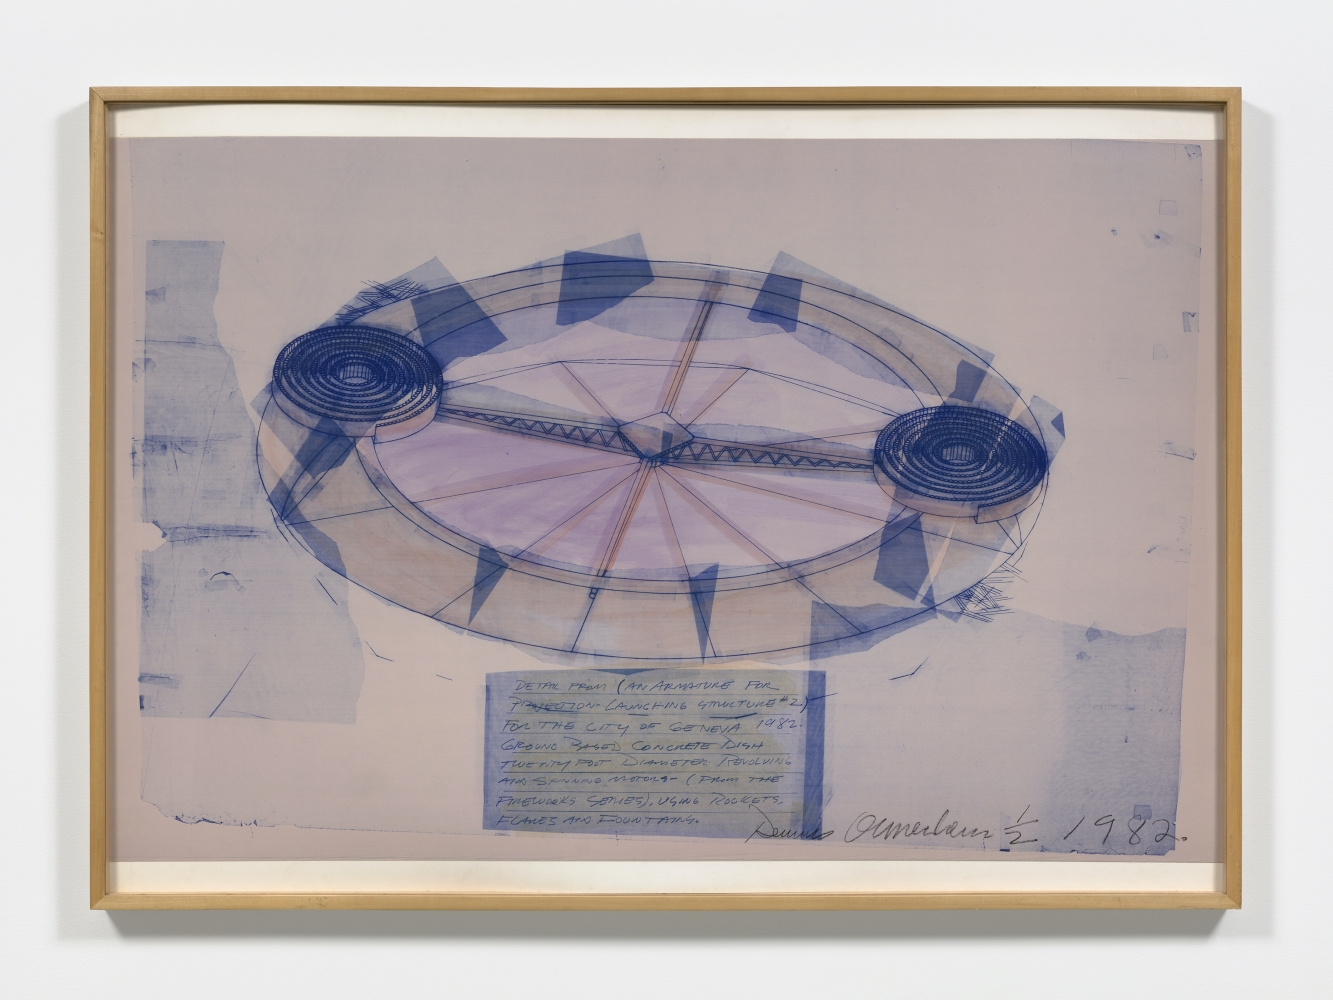 Blue tinted line print on linen depicting circular rotating launching structure by Dennis Oppenheim.